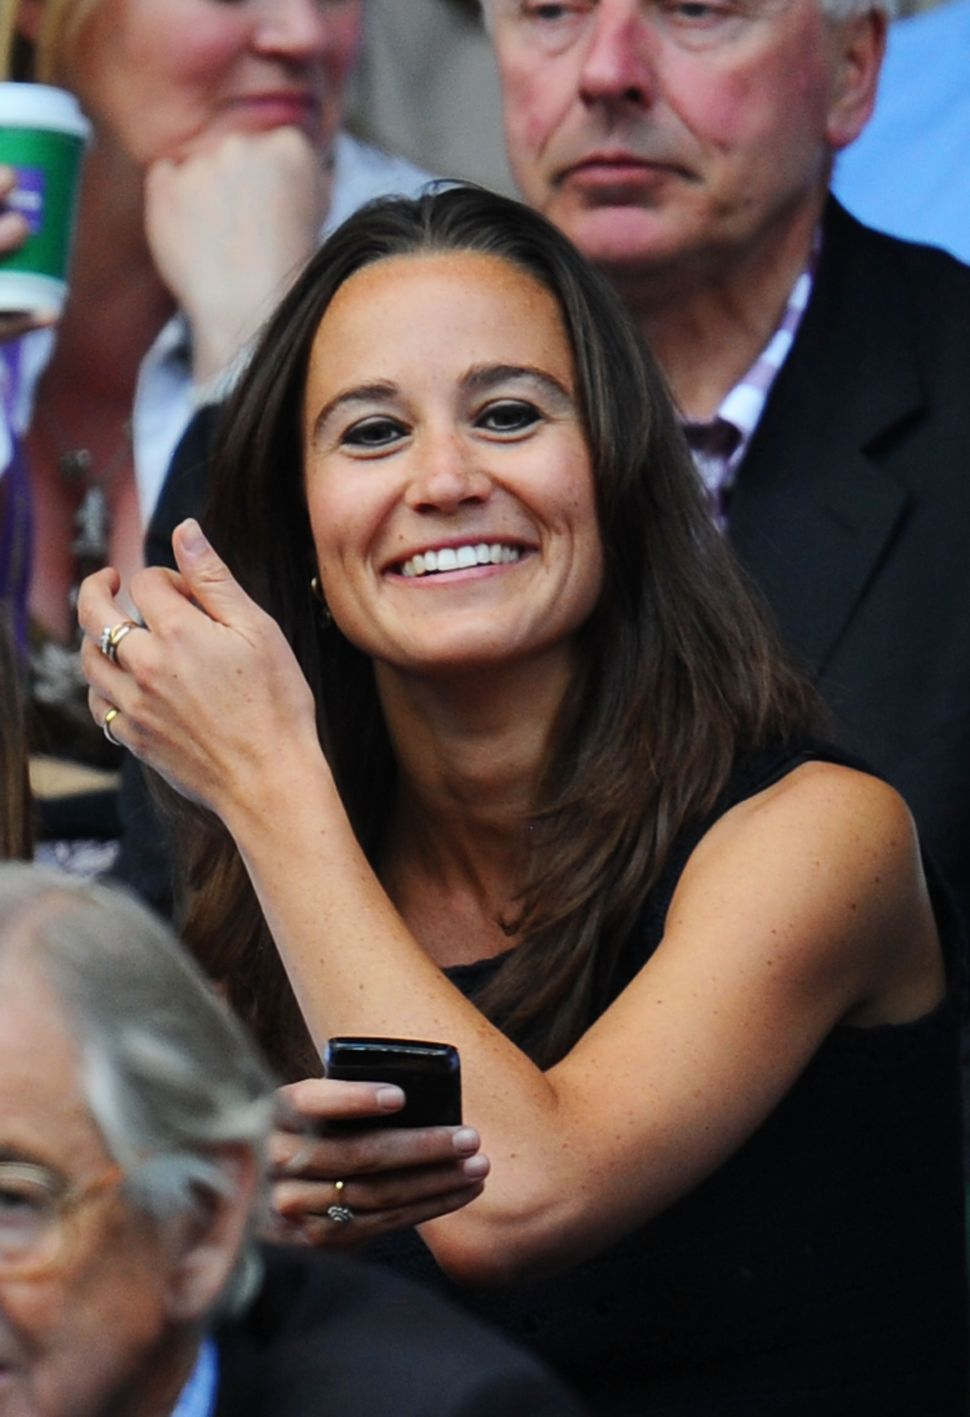 Pip-pip Hooray! Pippa Middleton Could Be Spending a Lot More Time in New York